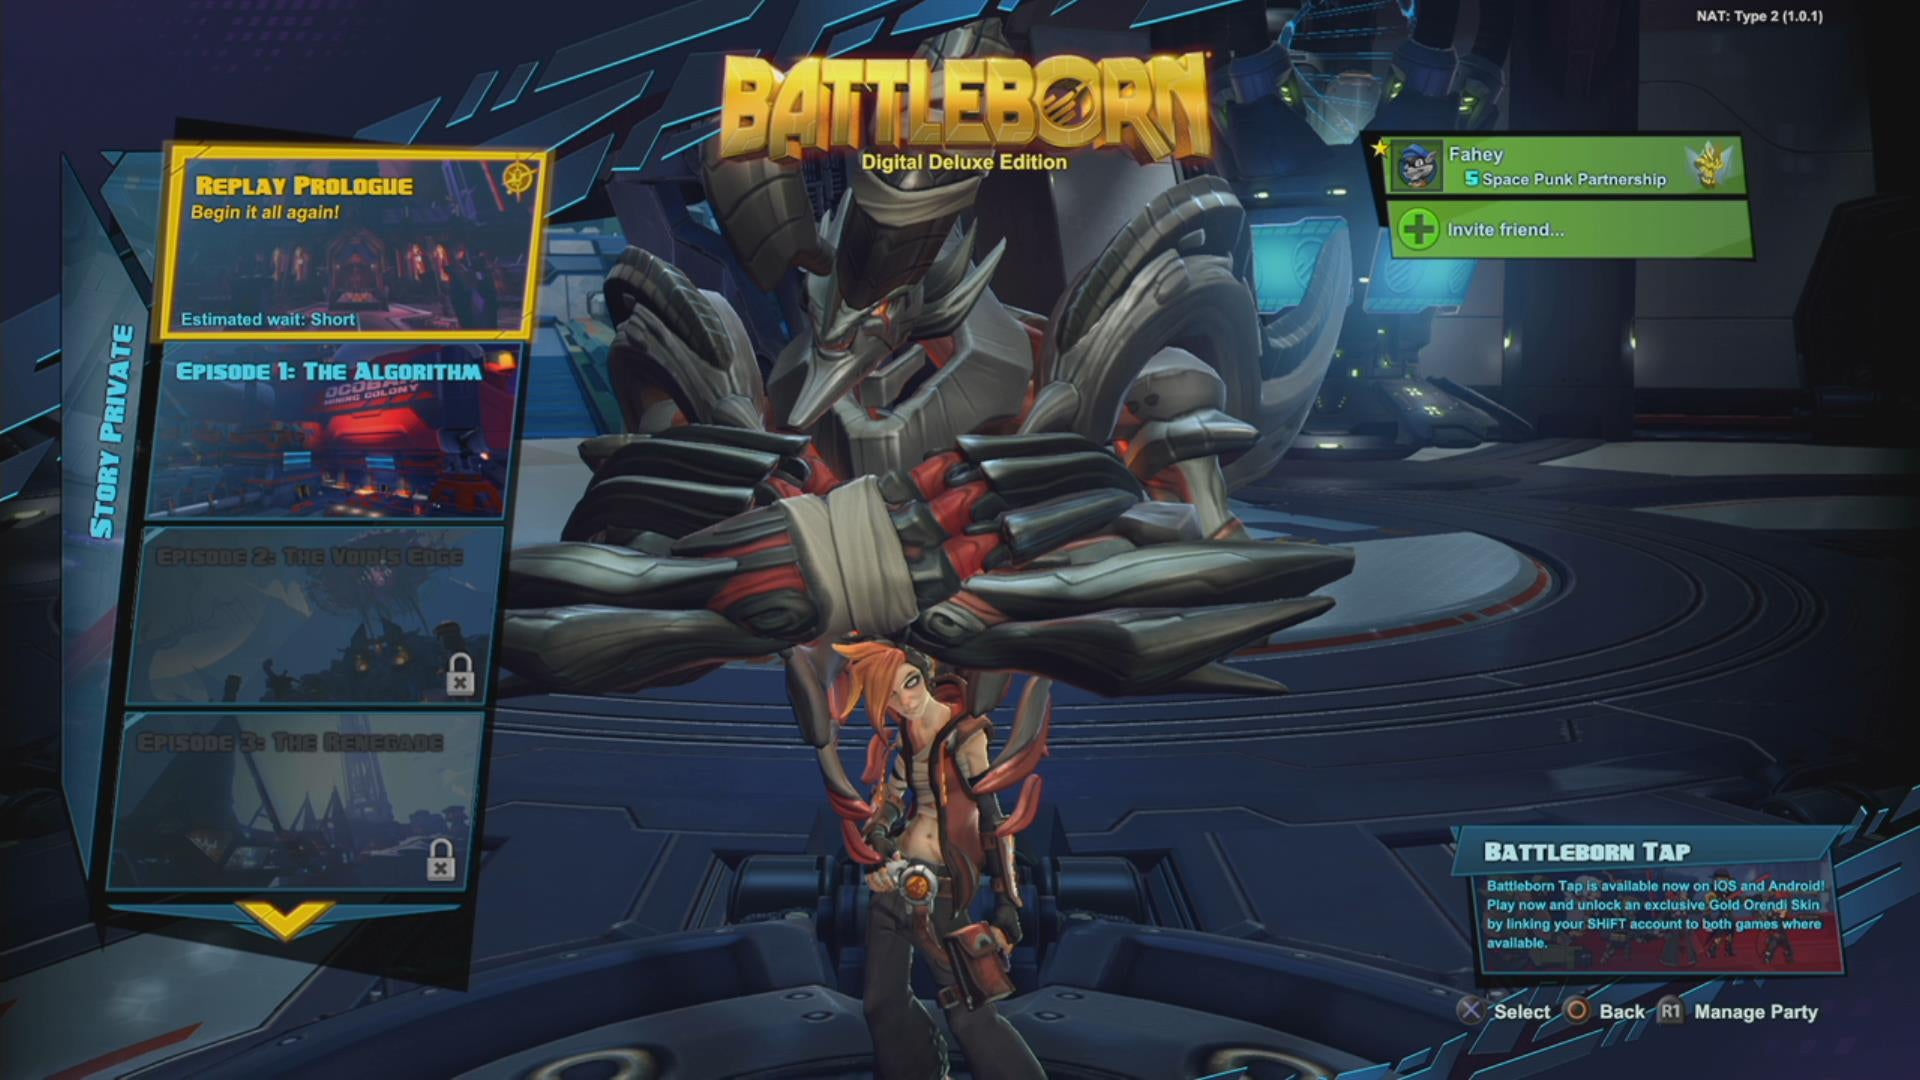 Just Like That, Battleborn's Prologue Is Now Replayable